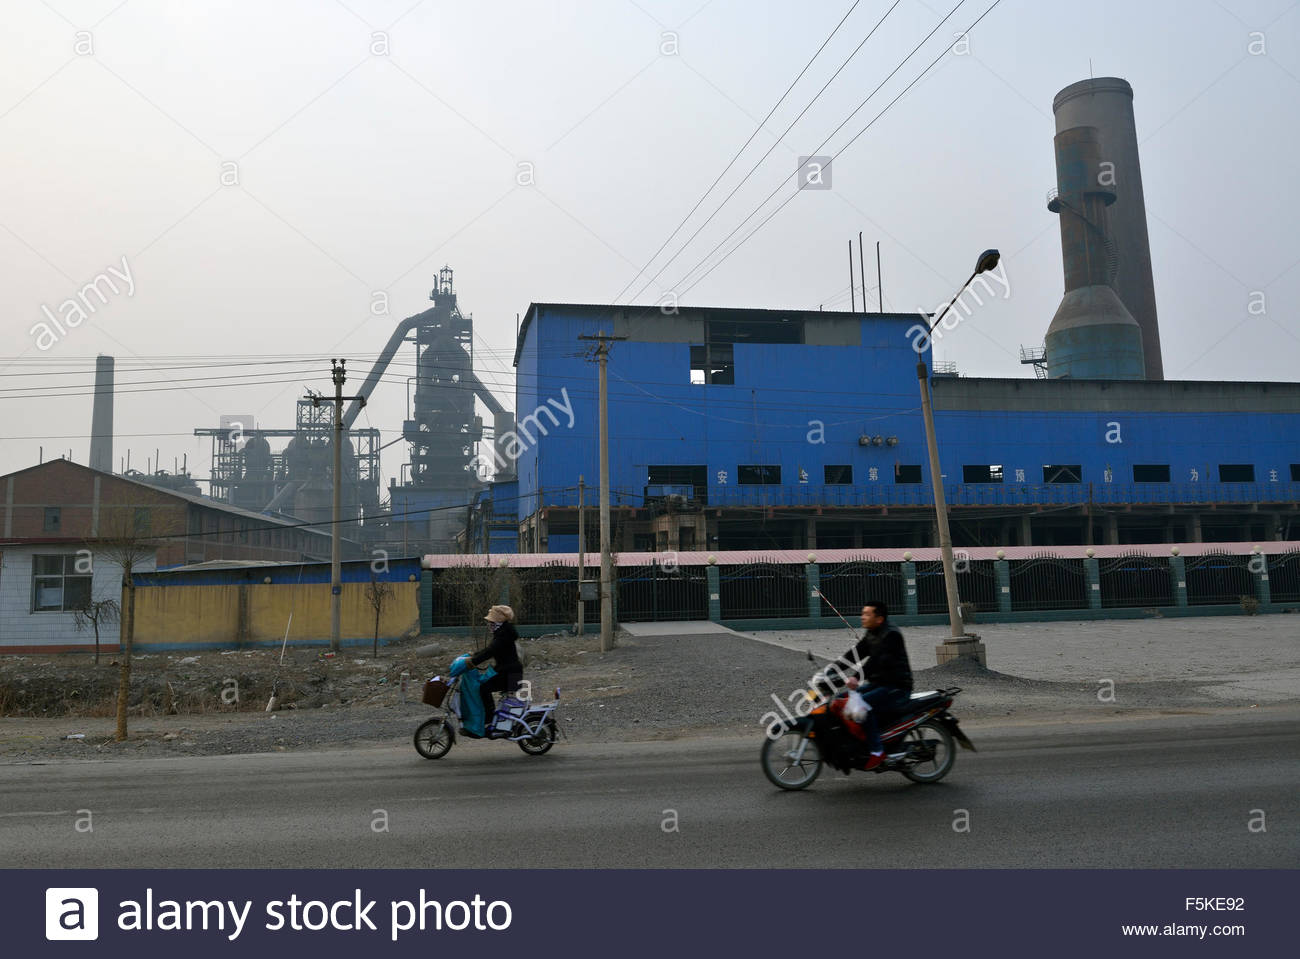 A closed steel factory in Fengnan, Tangshan, Hebei province, China. 25-Mar-2014 - Stock Image